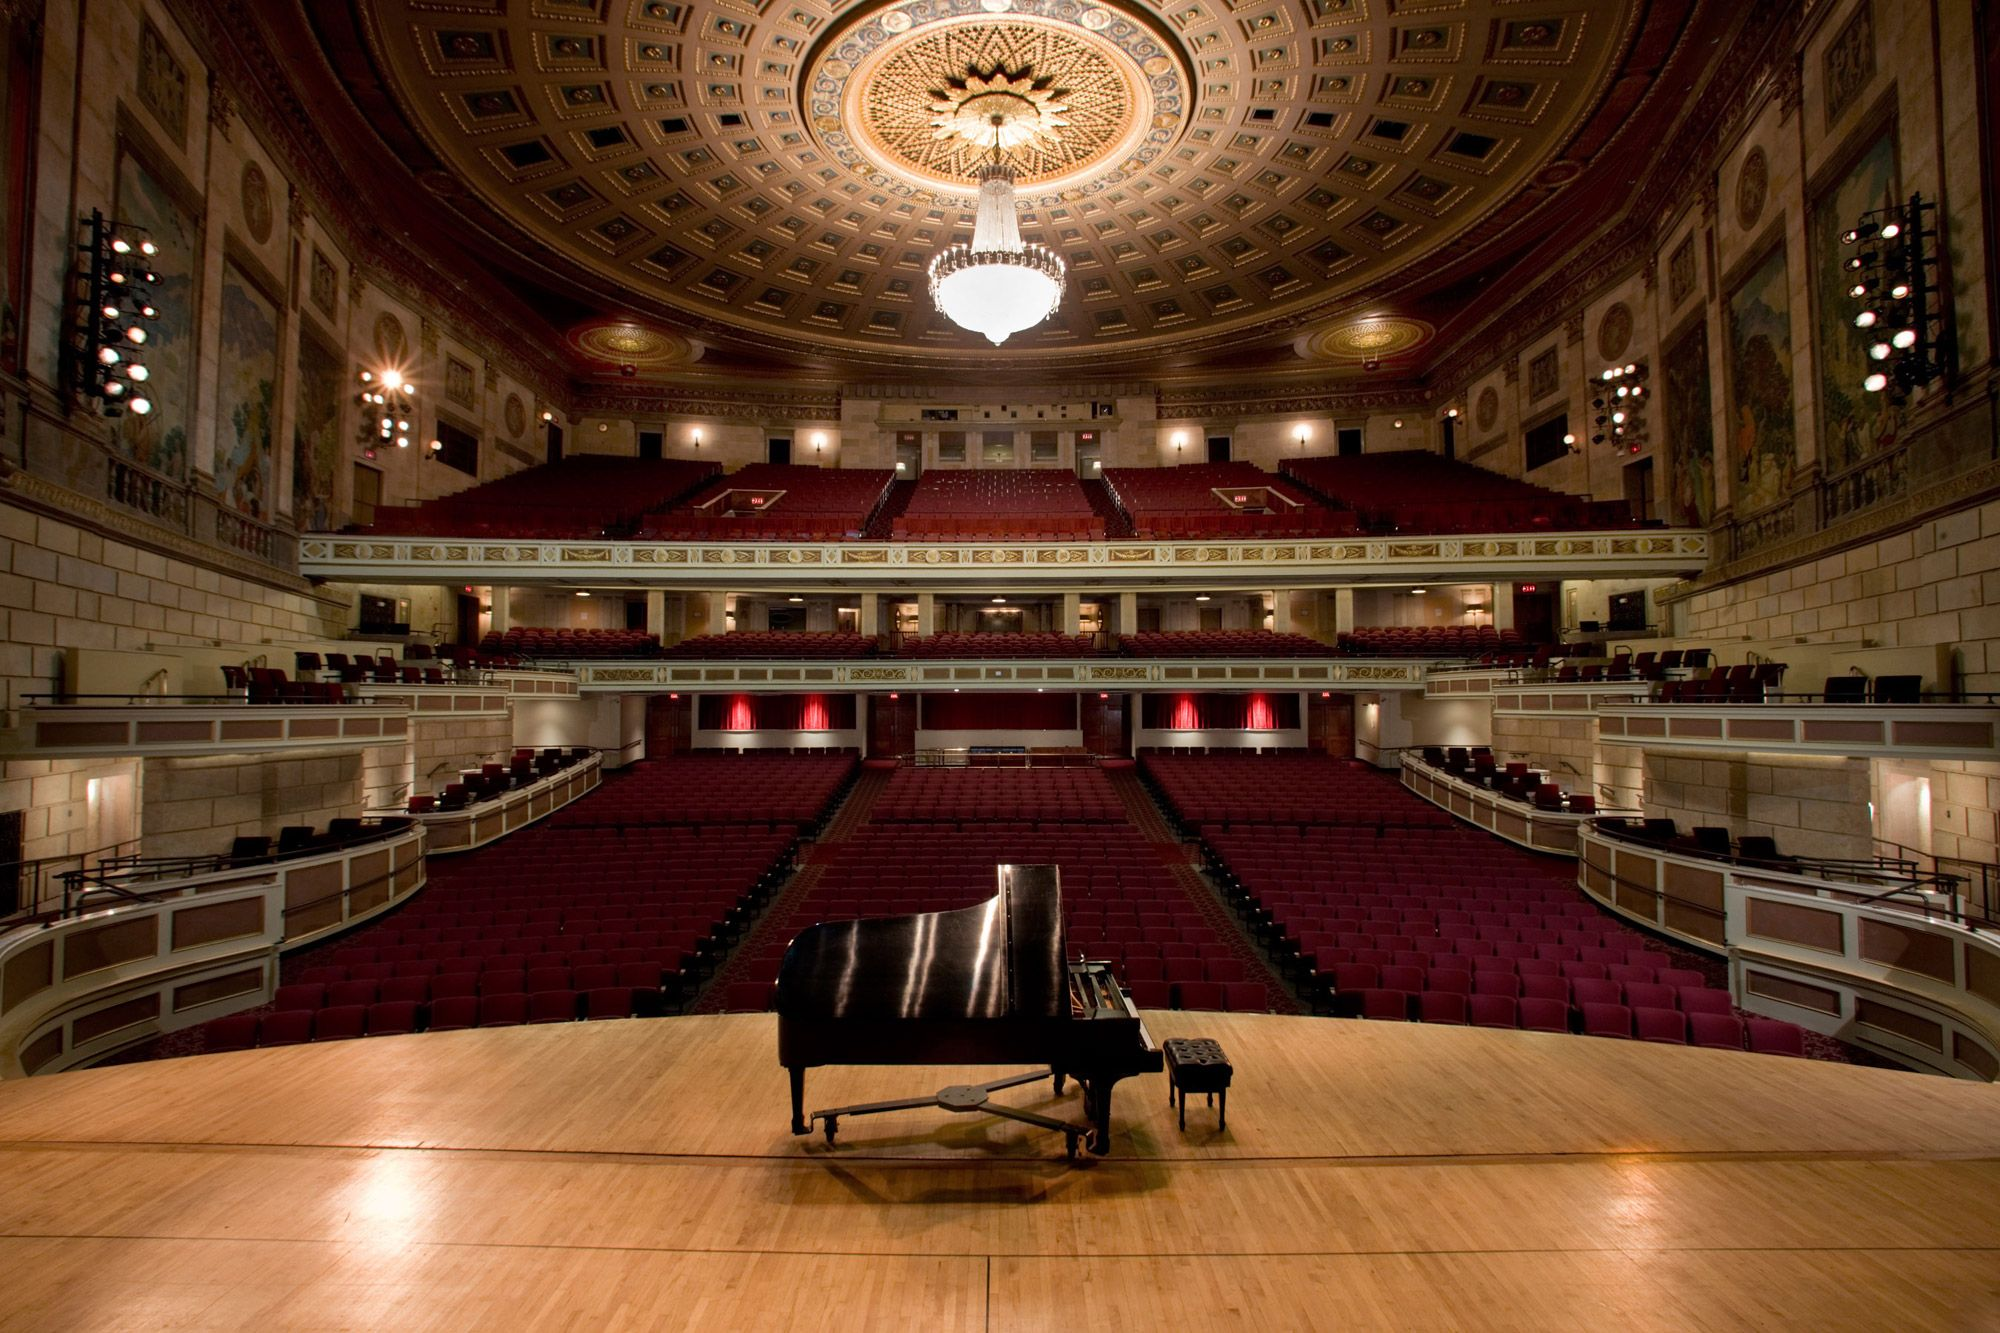 Eastman School of Music - Rochester NY | upstate NY in 2018 ...